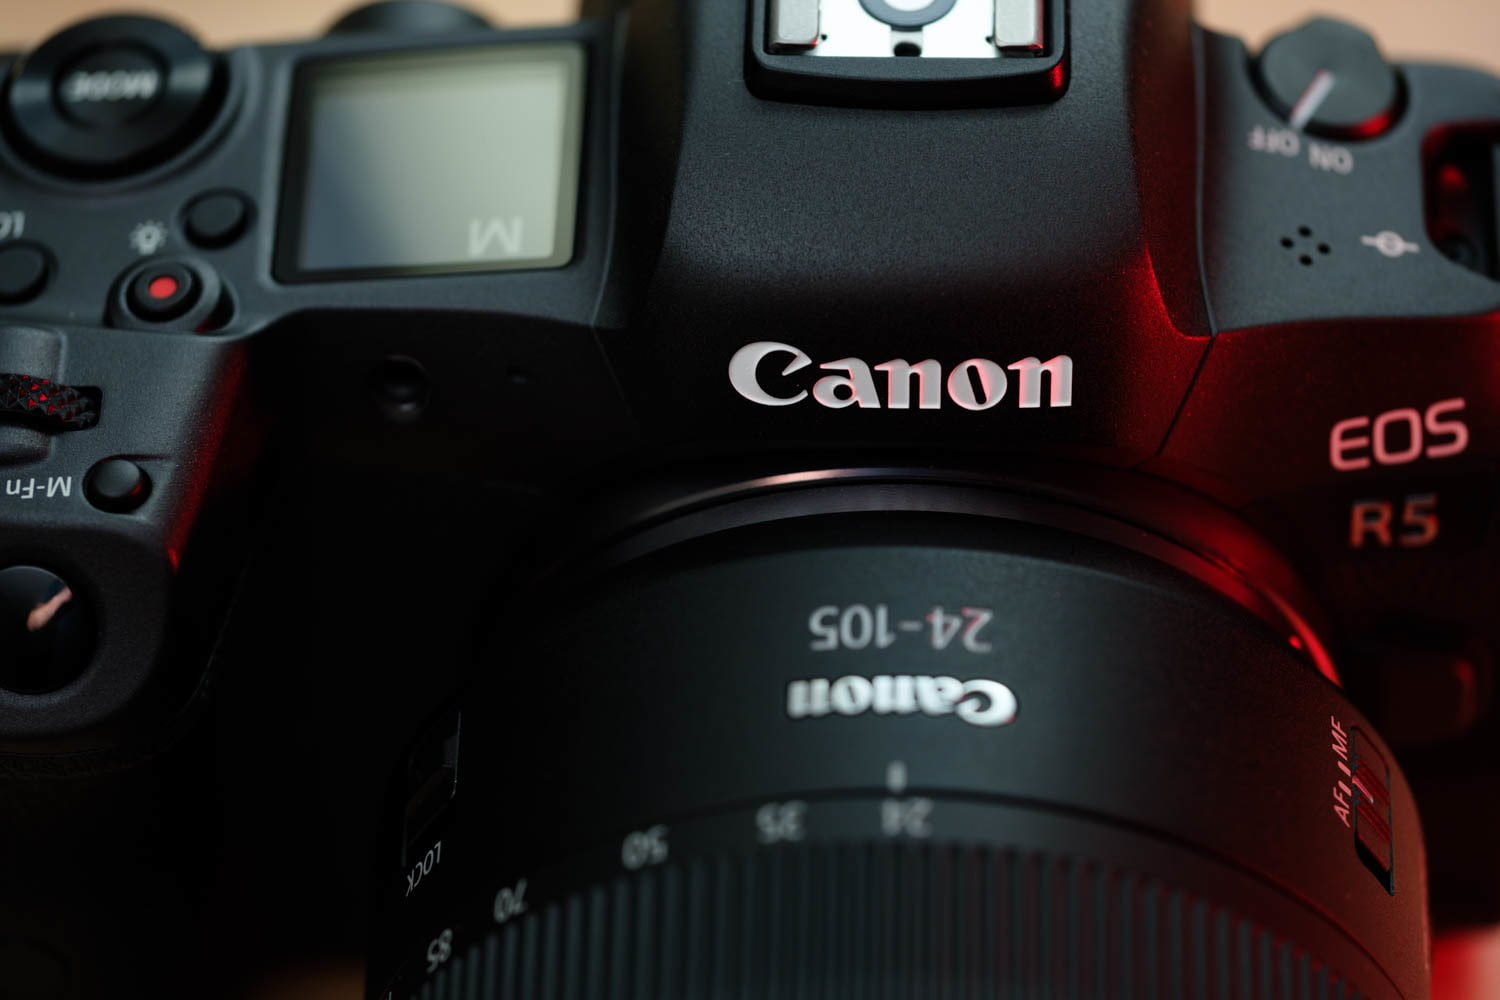 Canon EOS R5 product photo